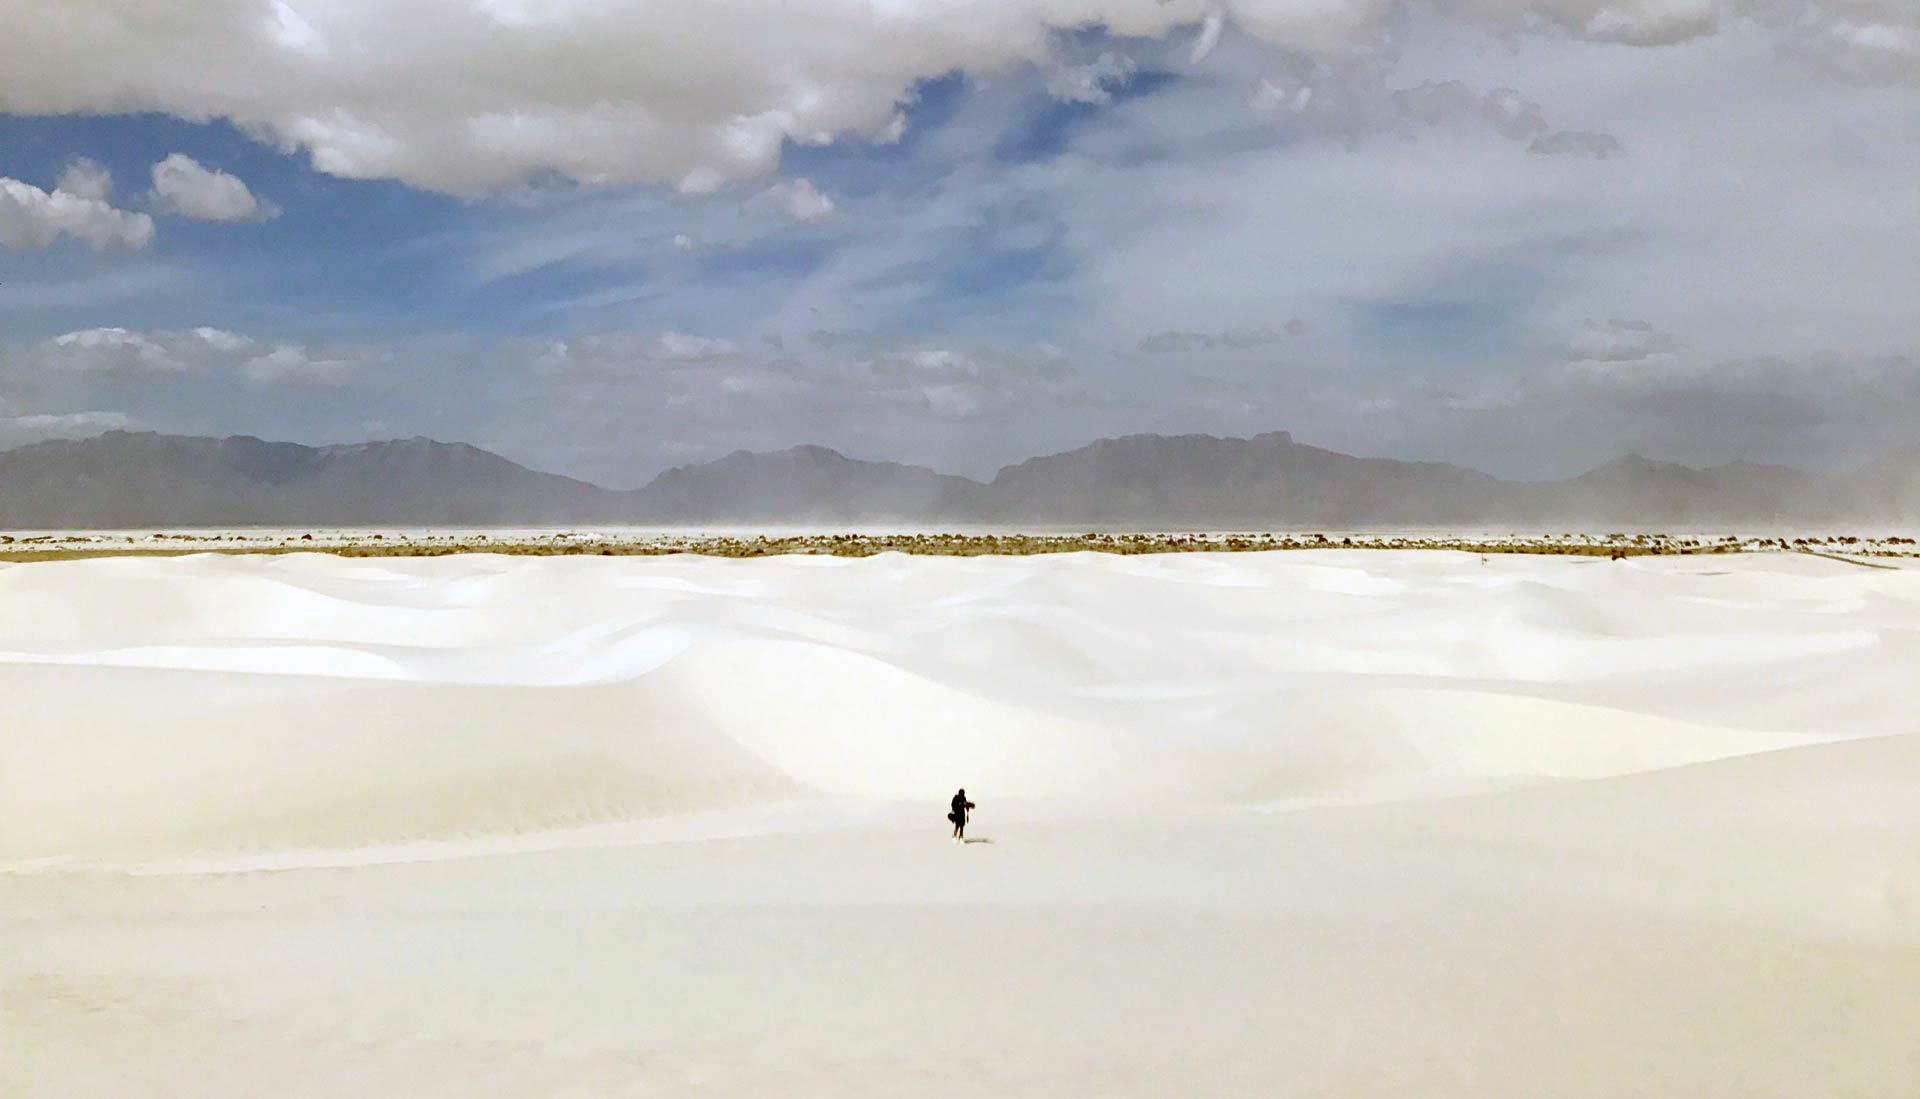 NASA White Sands Test Facility